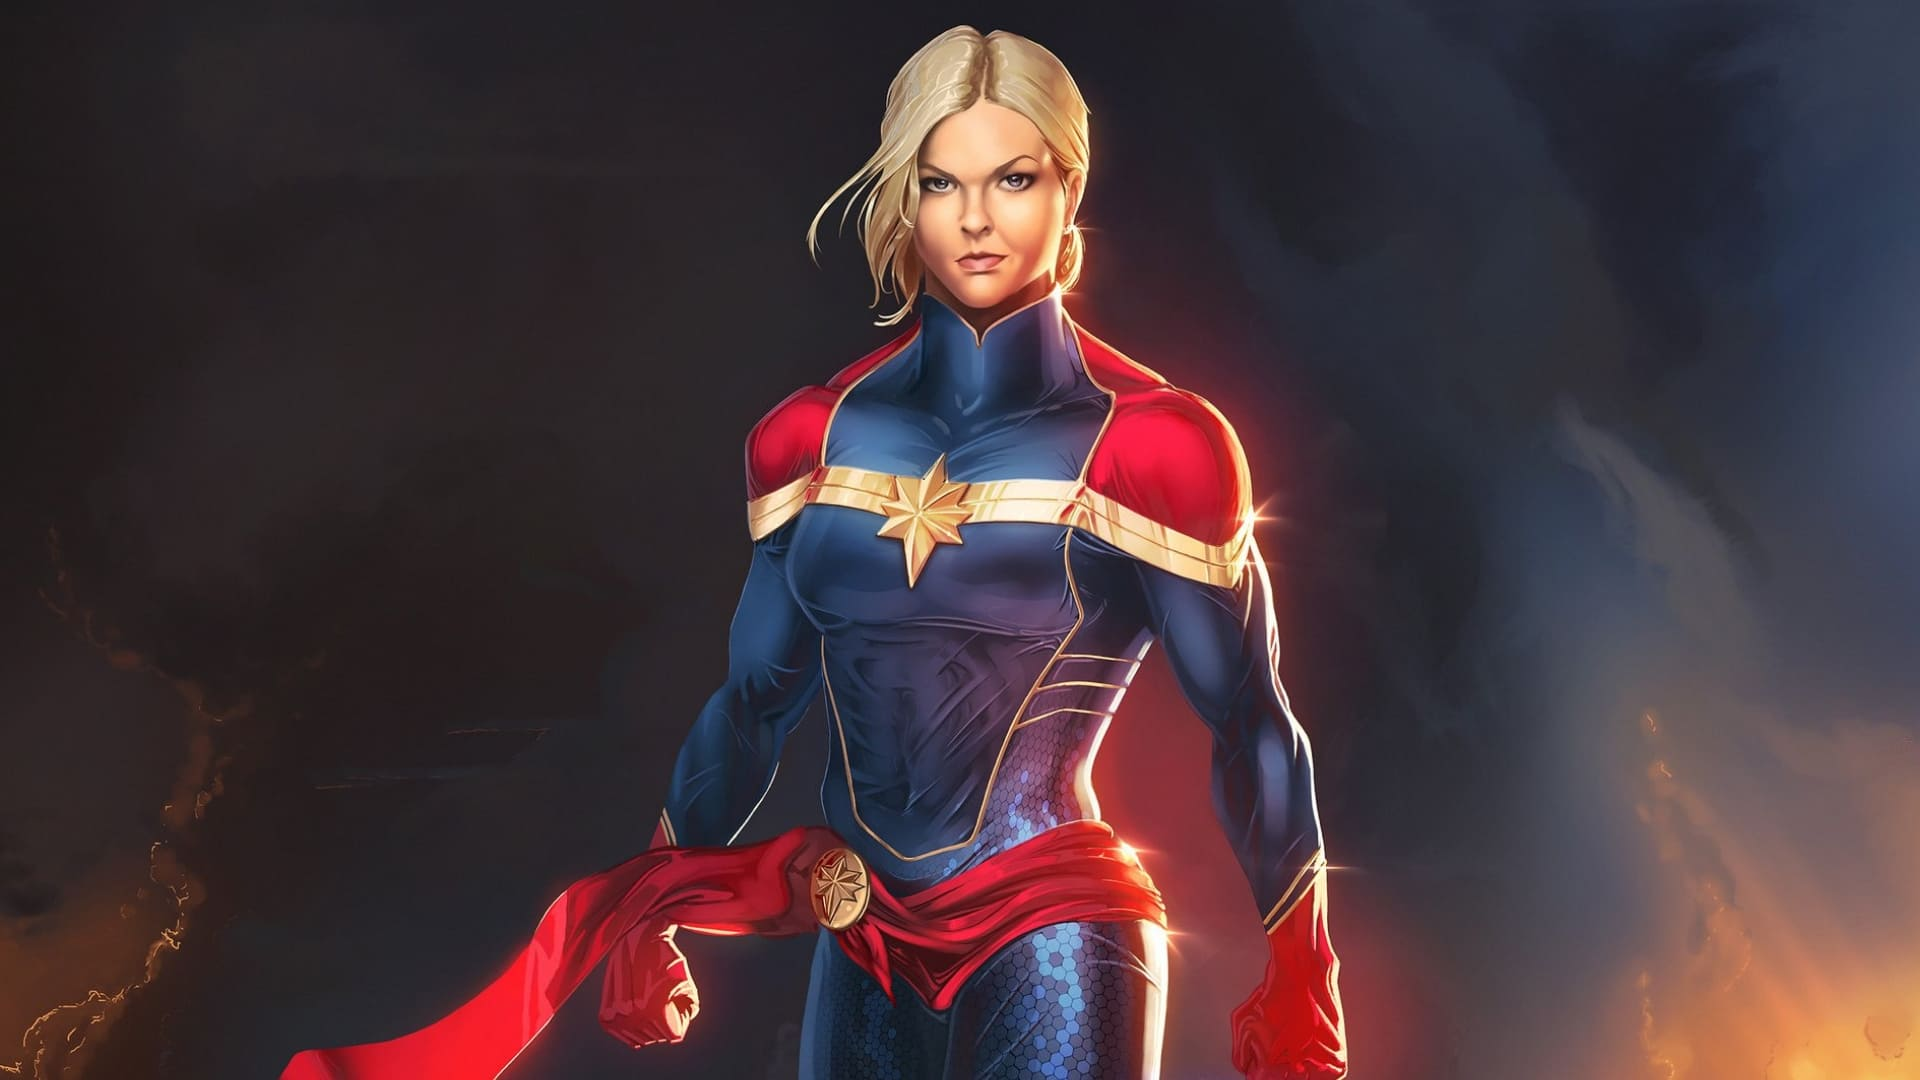 images of captain marvel